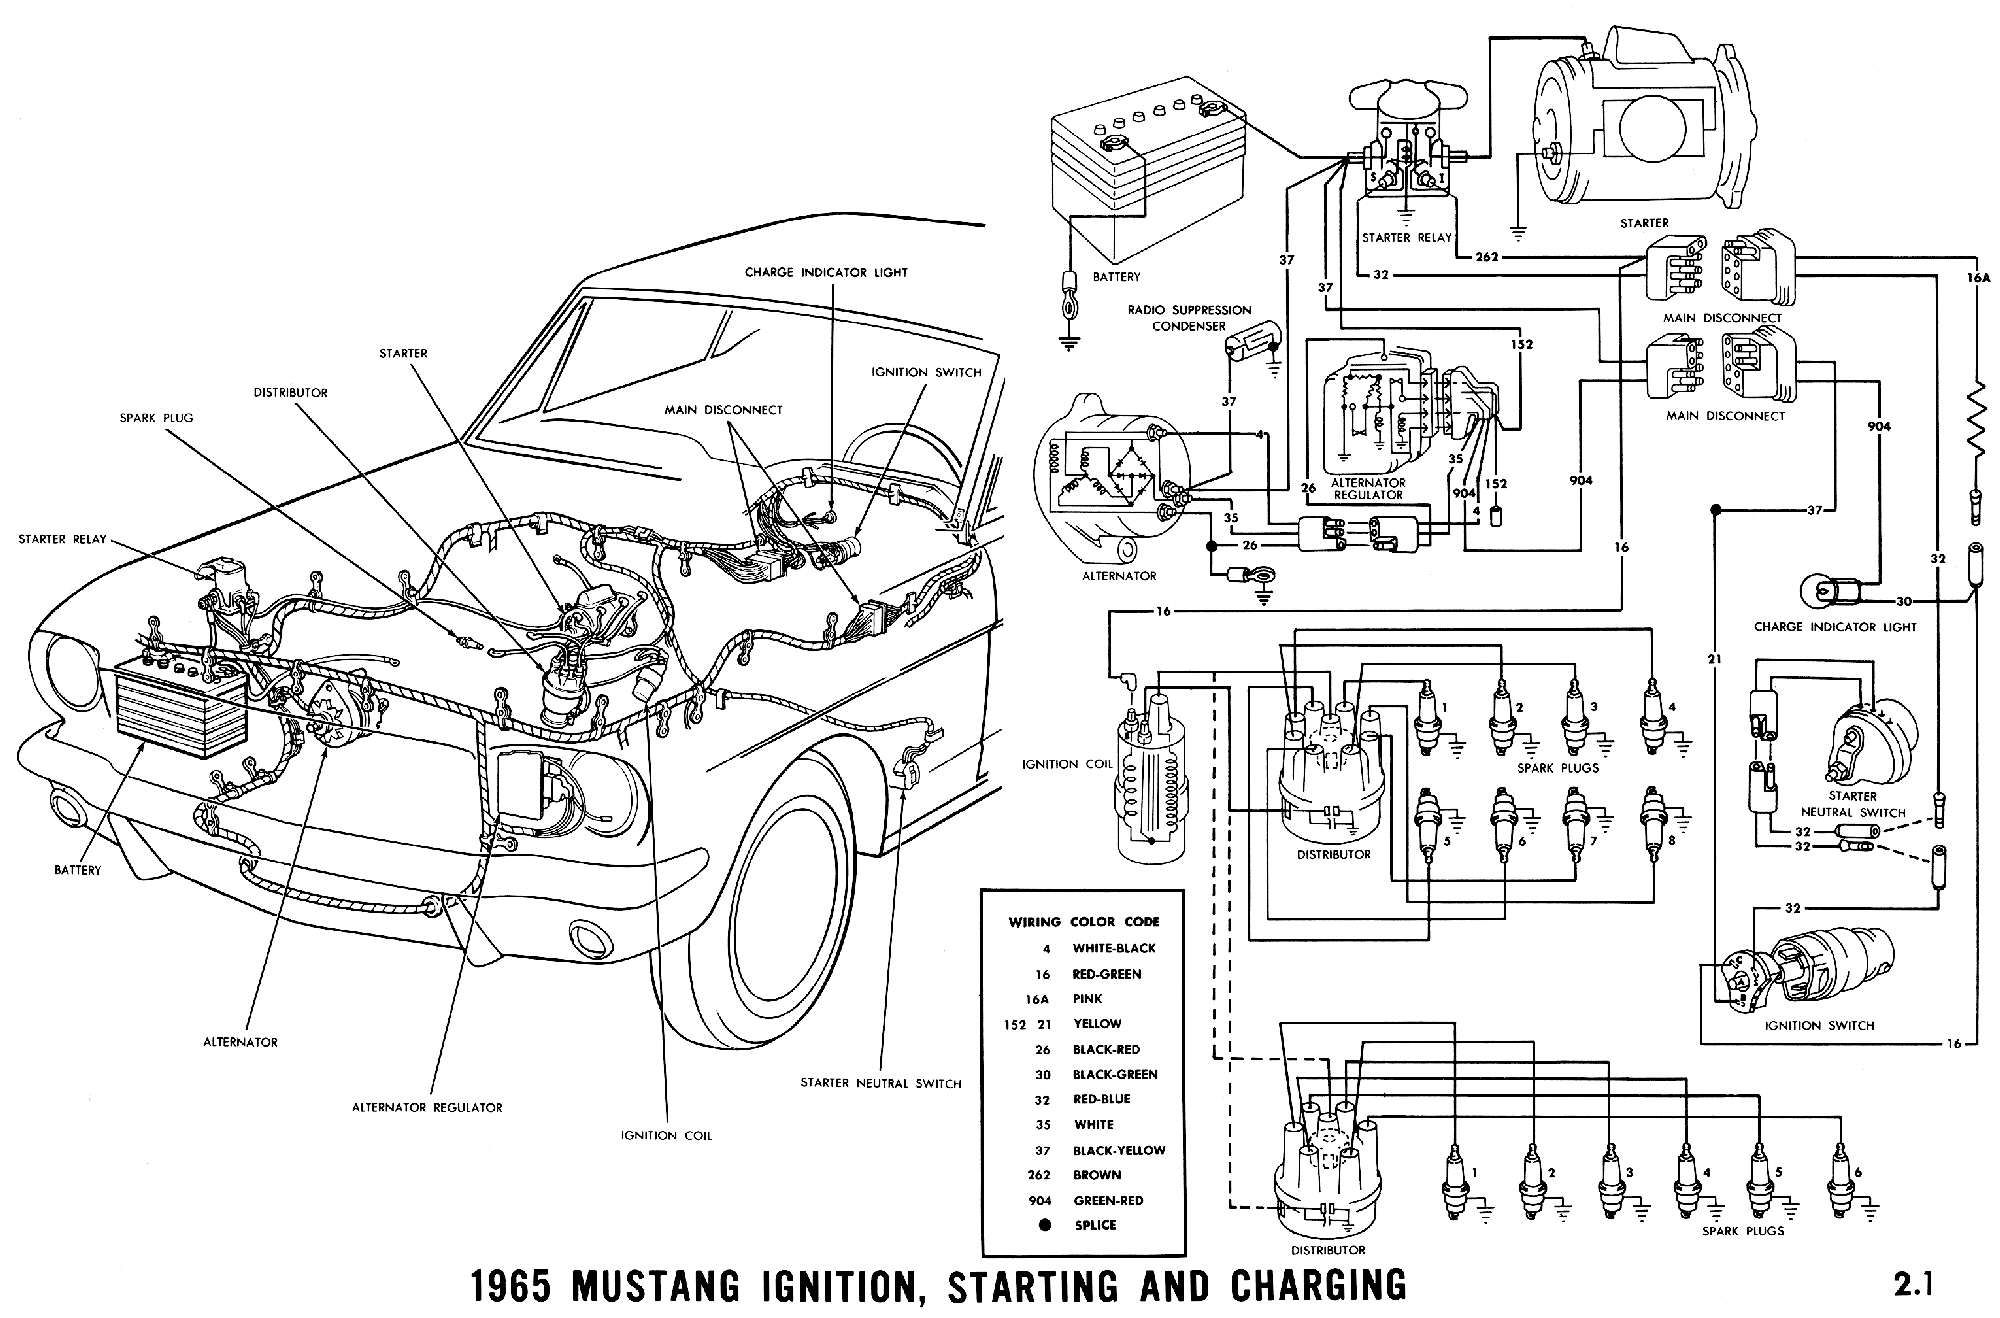 1965 Mustang Wiring Diagrams - Average Joe Restoration Mustang Parts, 1966  Ford Mustang, Ford